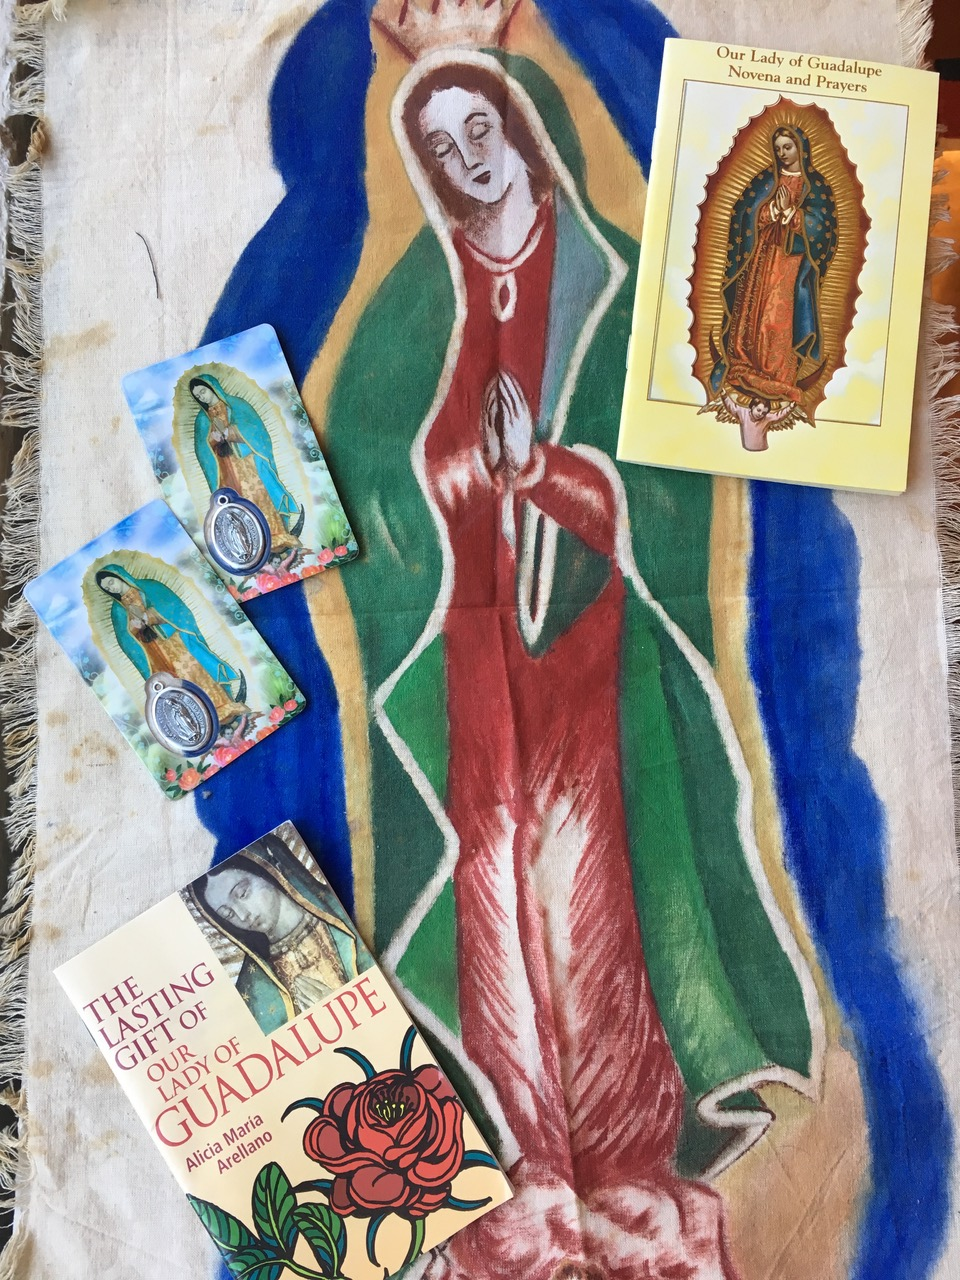 Image: Our Lady of Guadalupe